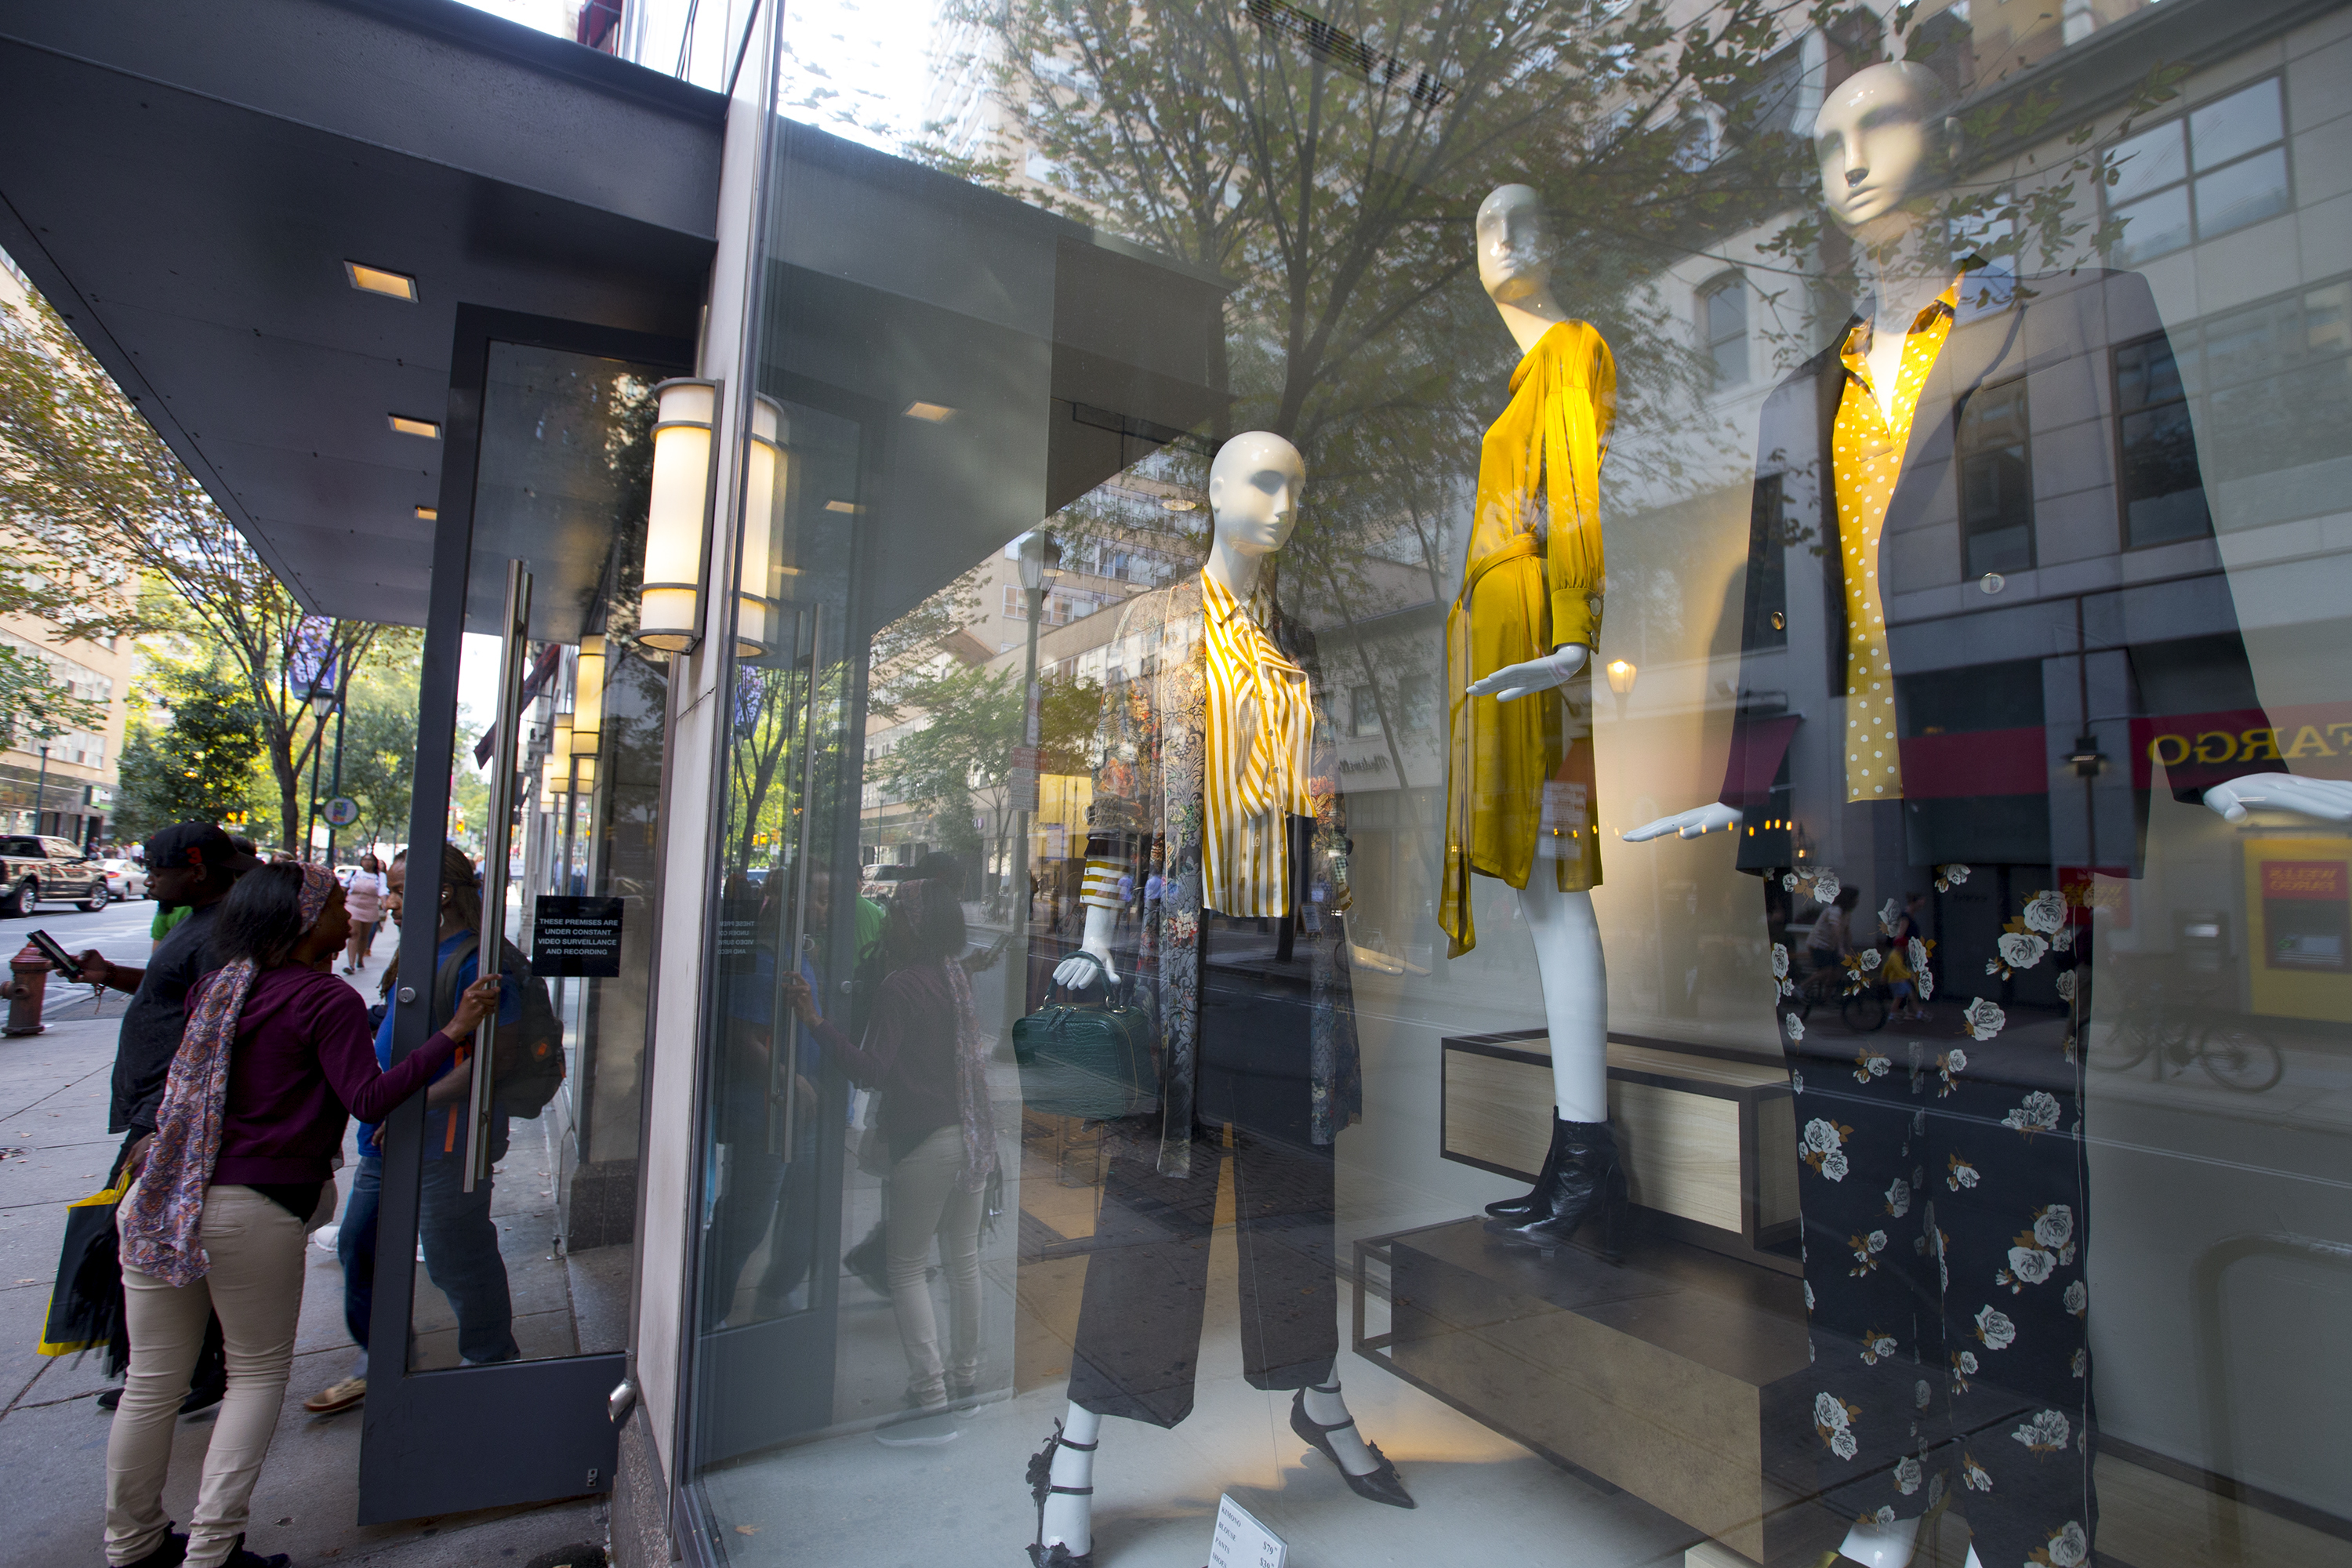 One of Zara's windows on 1715 Walnut Street in Center City. Up to now it had been the only Zara outpost in Pennsylvania.